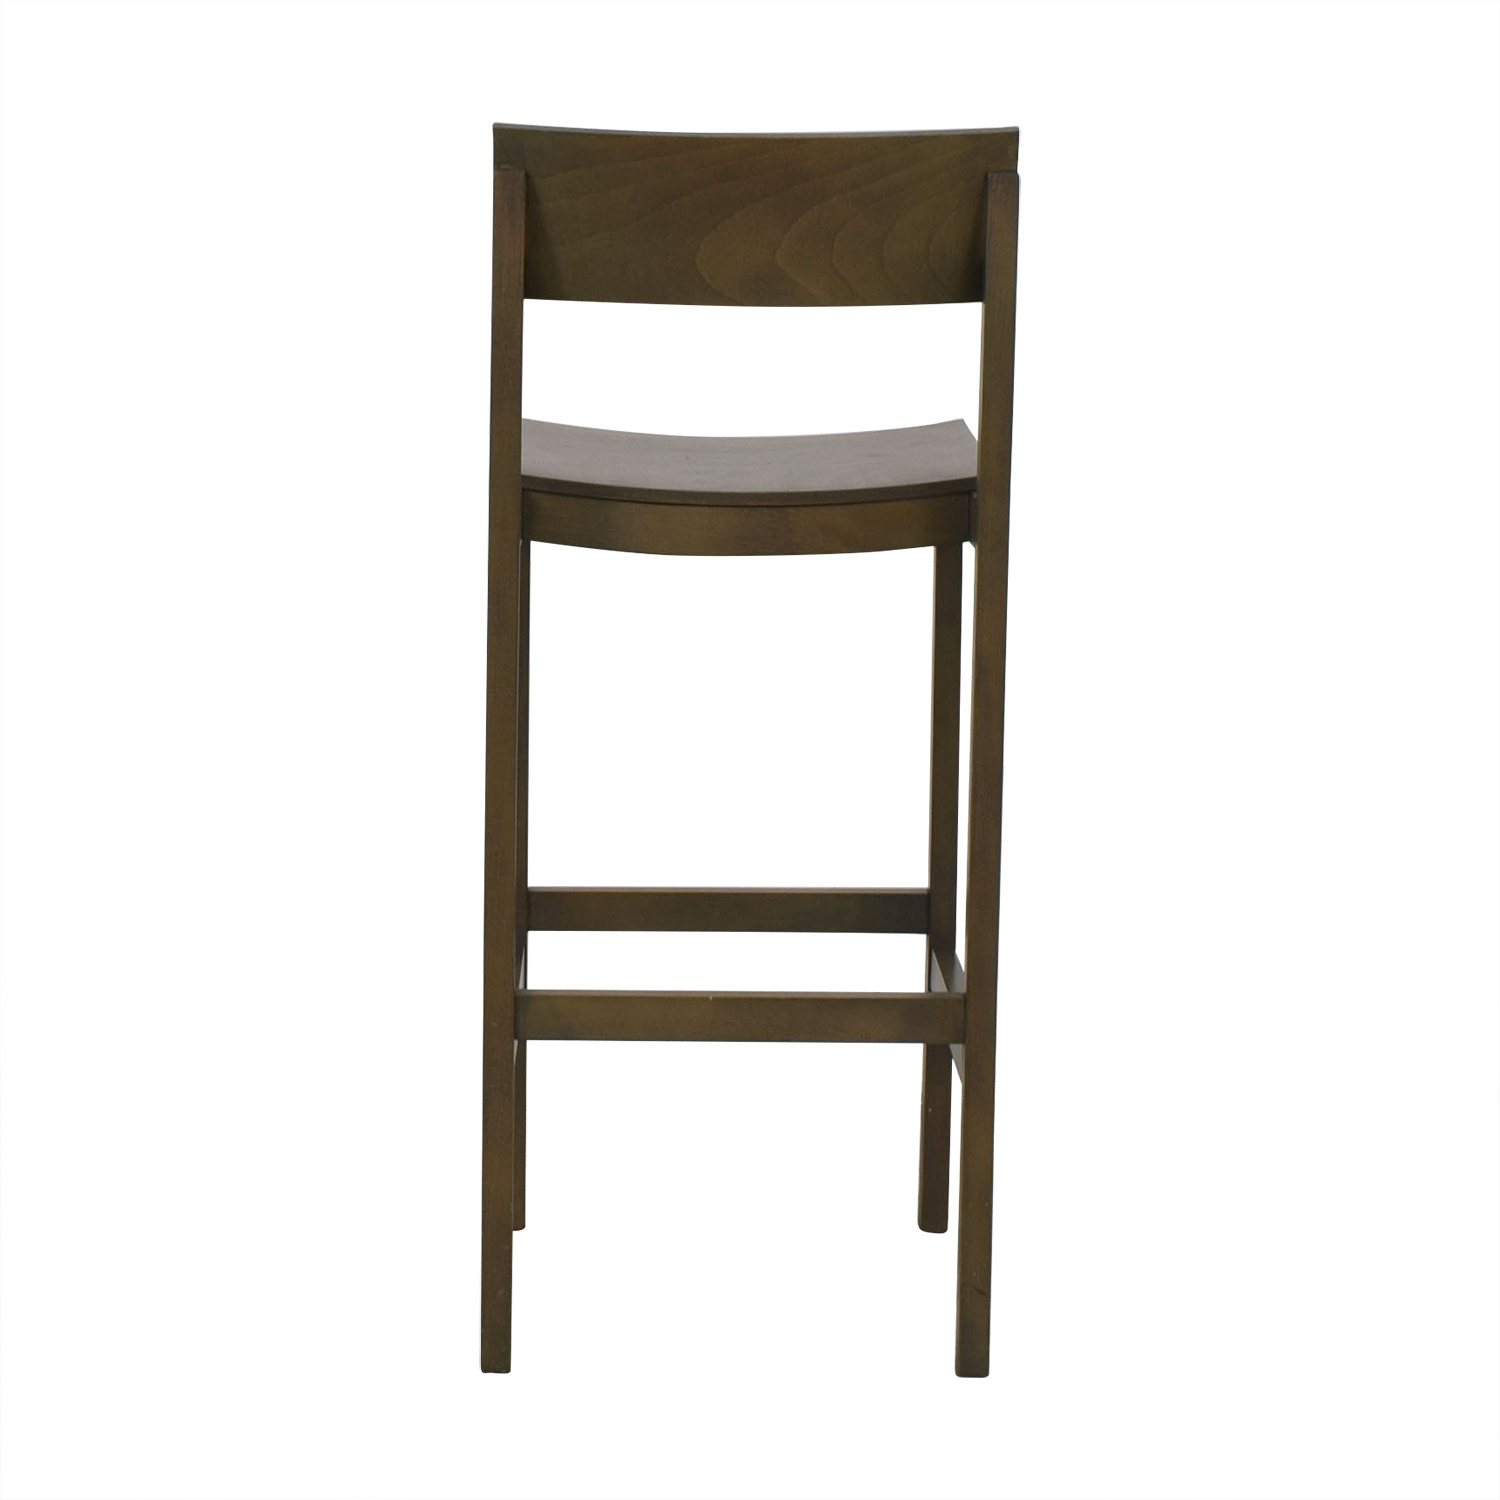 Marvelous 66 Off Cb2 Cb2 Counter Stool Chairs Unemploymentrelief Wooden Chair Designs For Living Room Unemploymentrelieforg